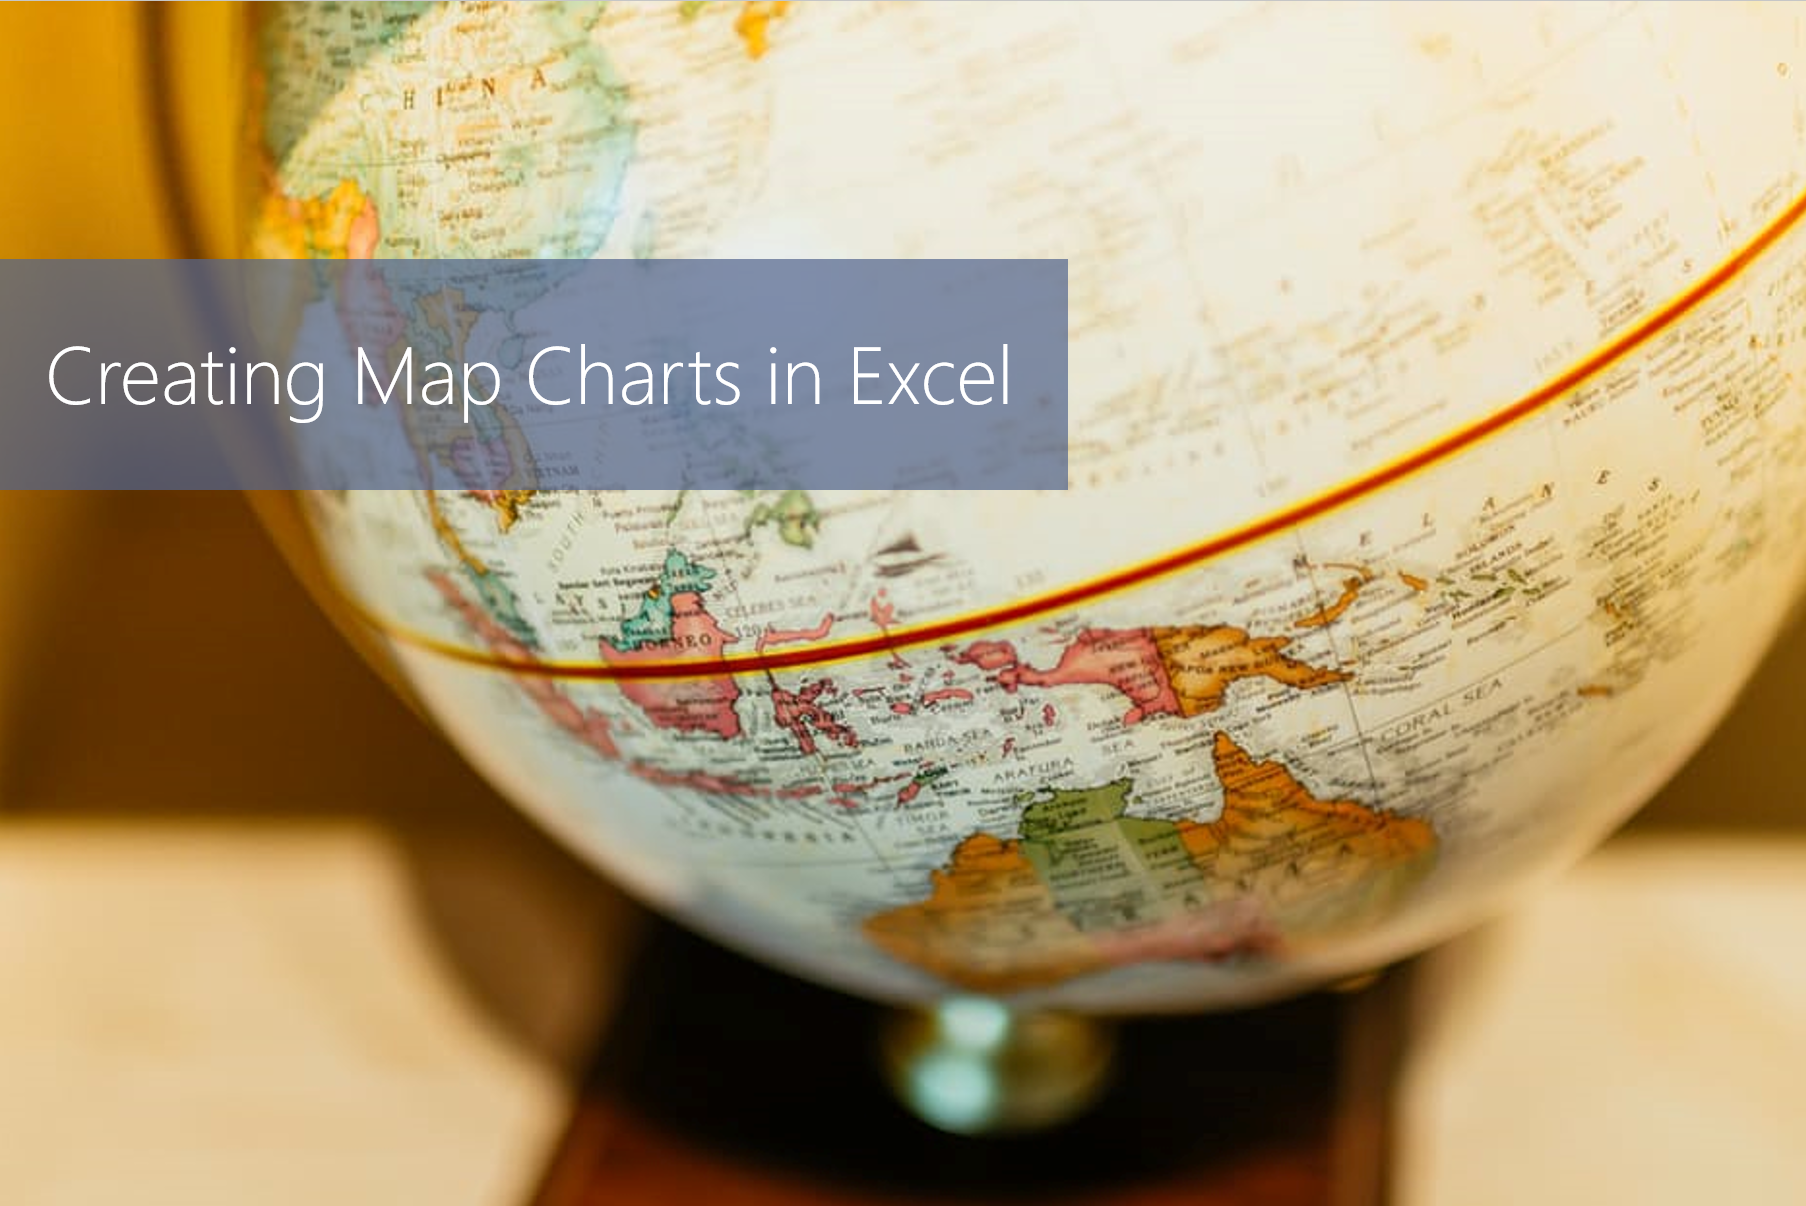 Day 336 creating map charts in excel tracy van der schyff 2017 01 30 224927 images for social media gumiabroncs Images